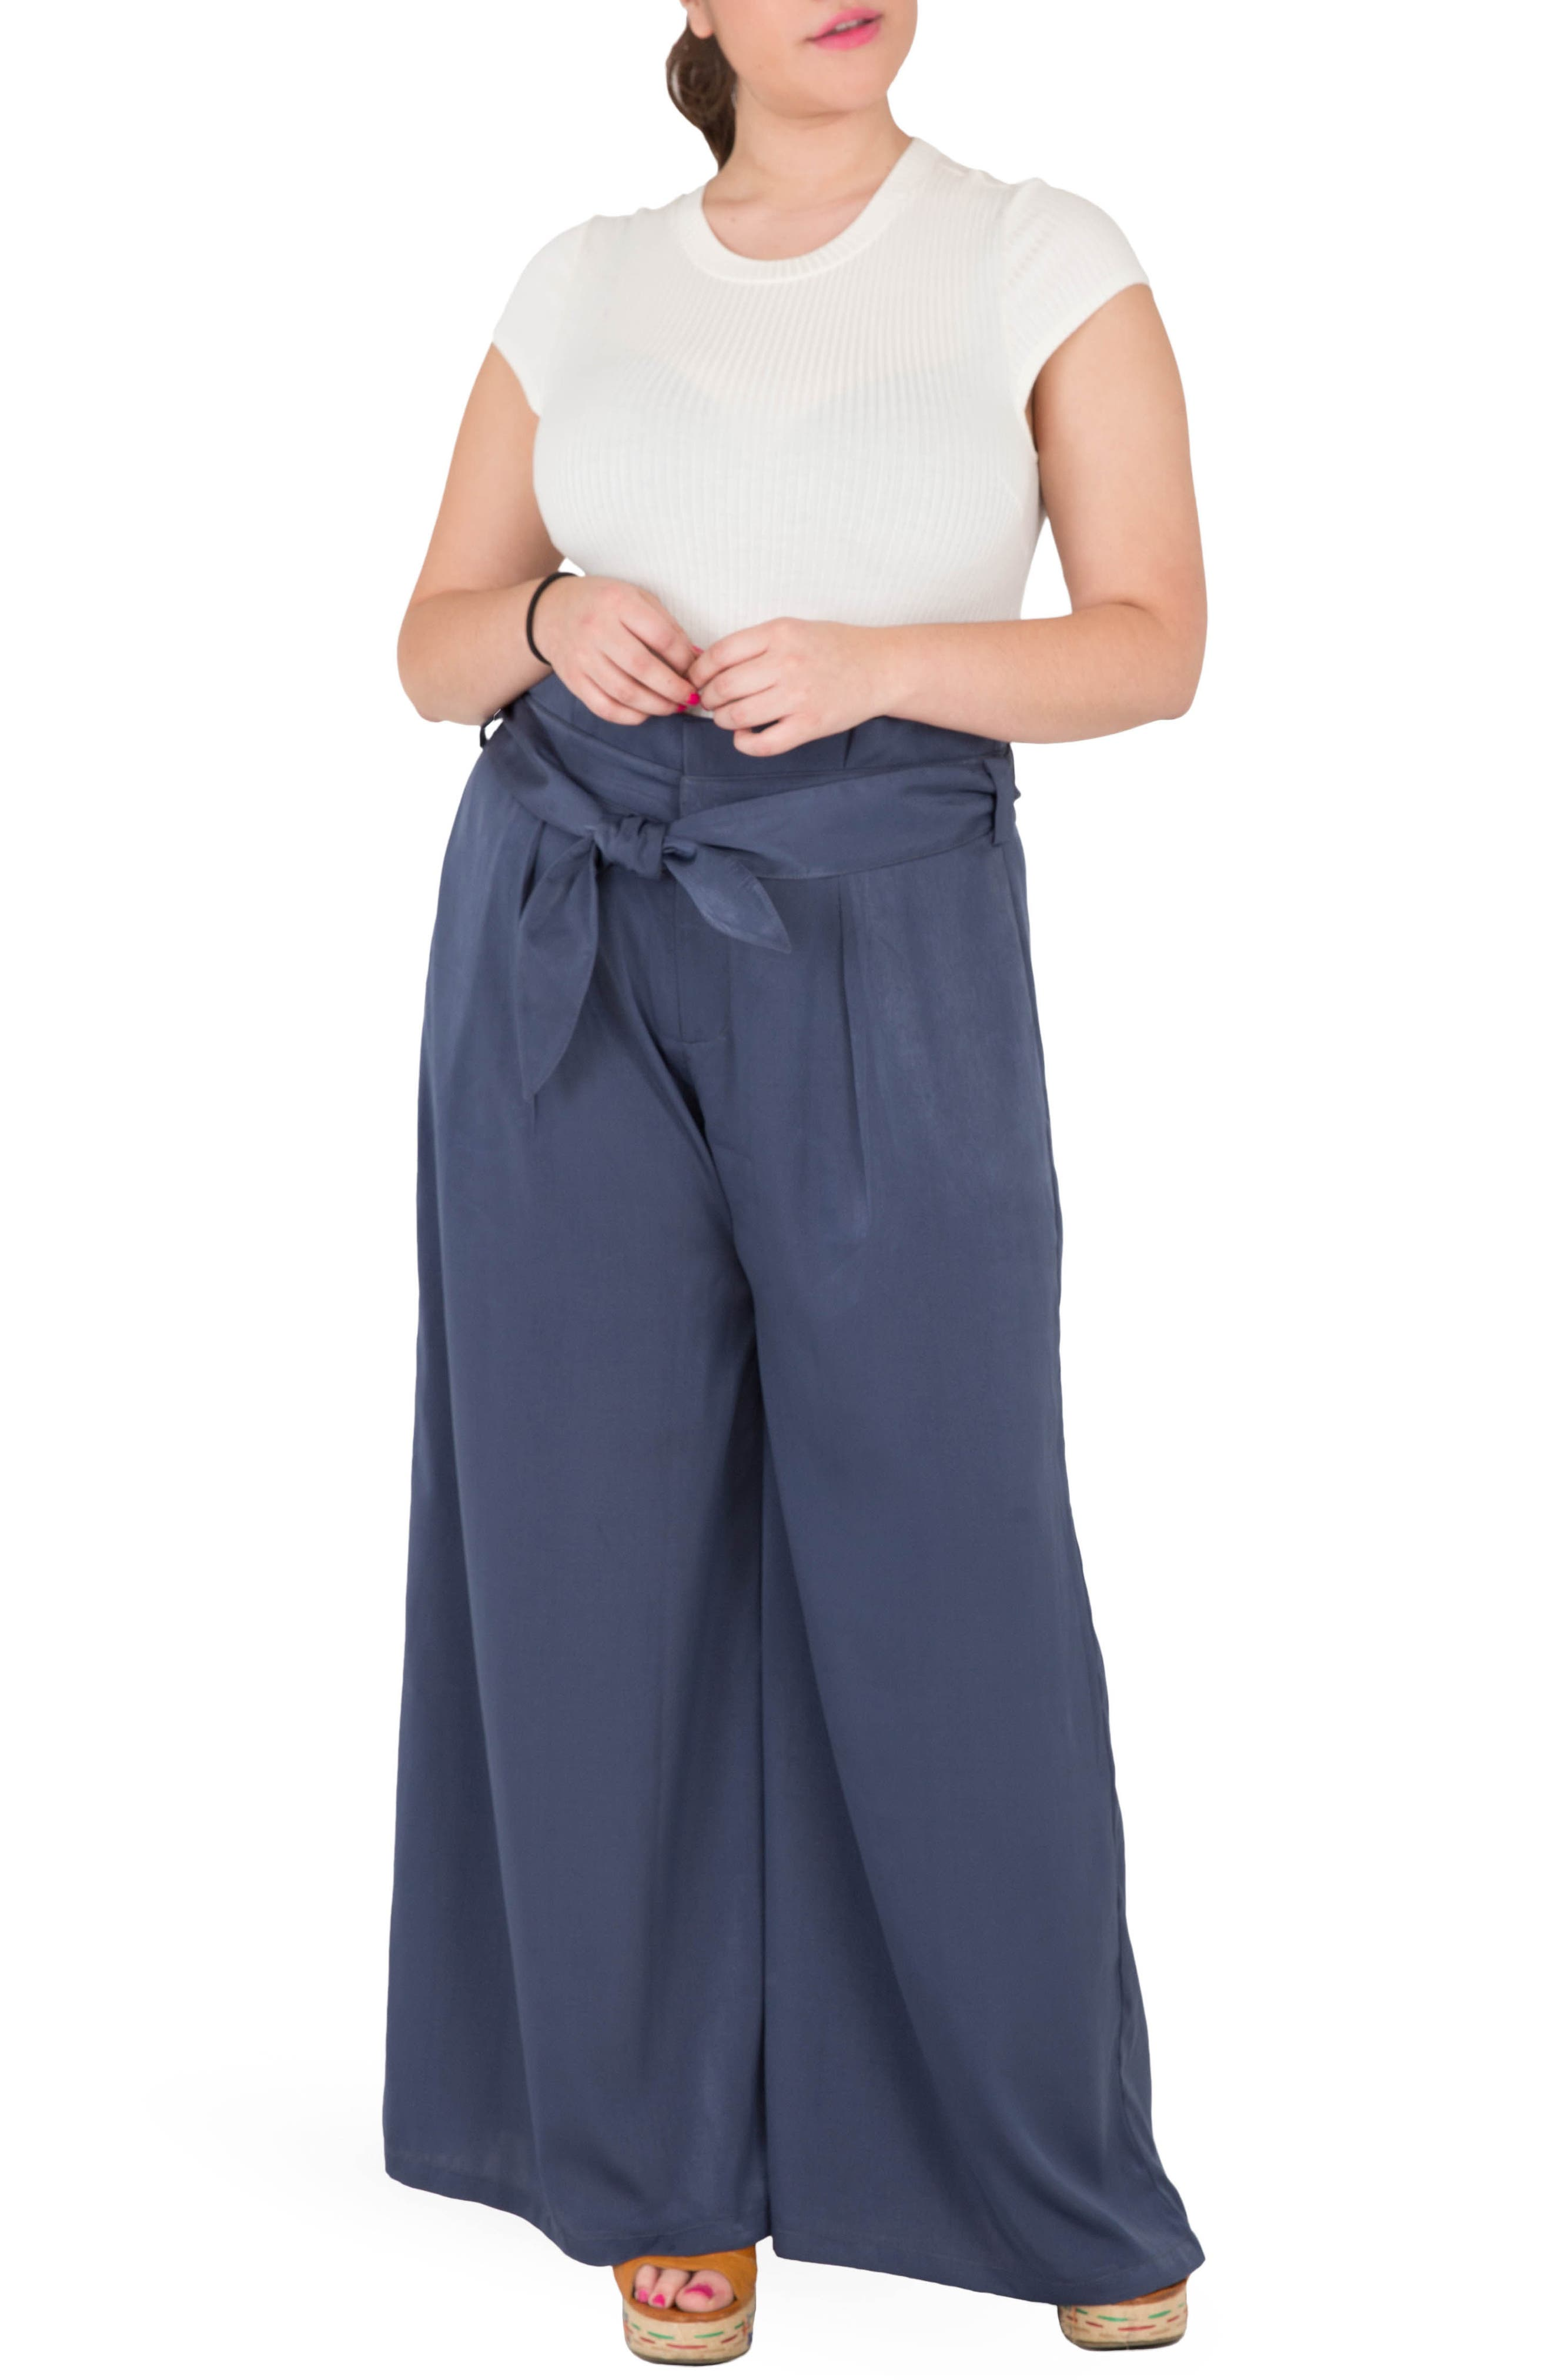 Sue Wide Leg Pants,                             Alternate thumbnail 4, color,                             NAVY